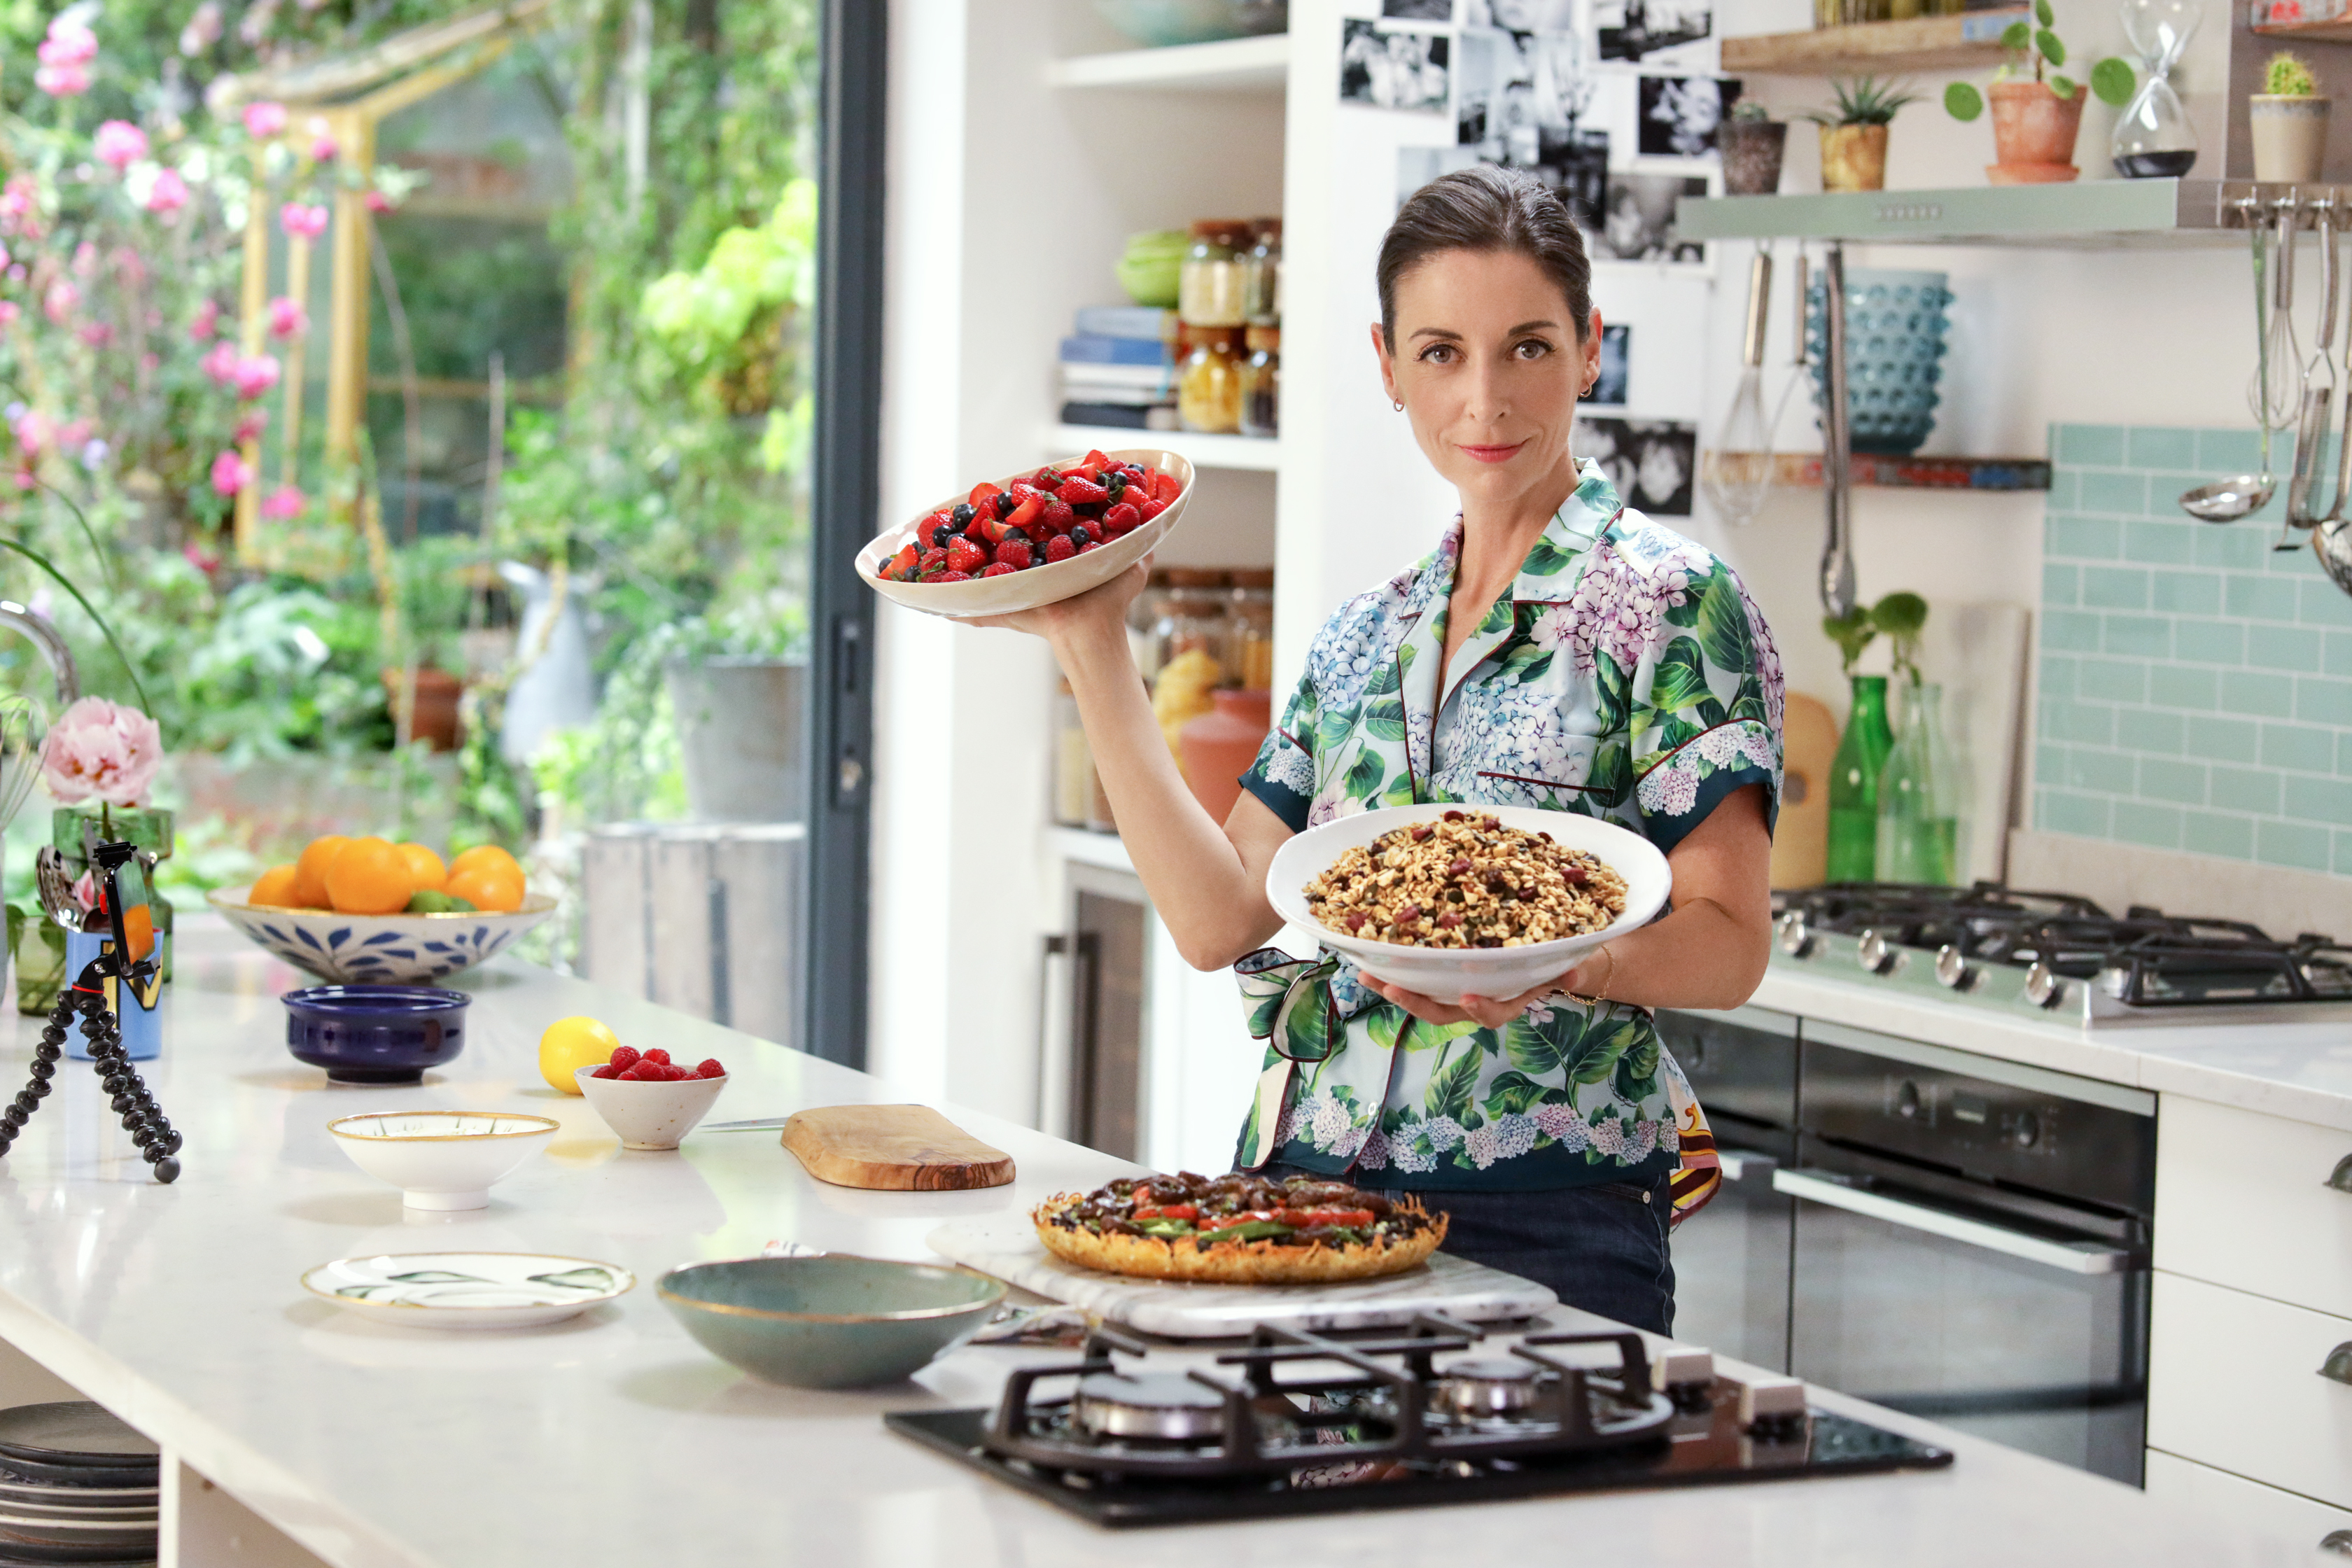 Mary McCartney in Kitchen holding a bowl of Granola Brunch food and smiling to camera